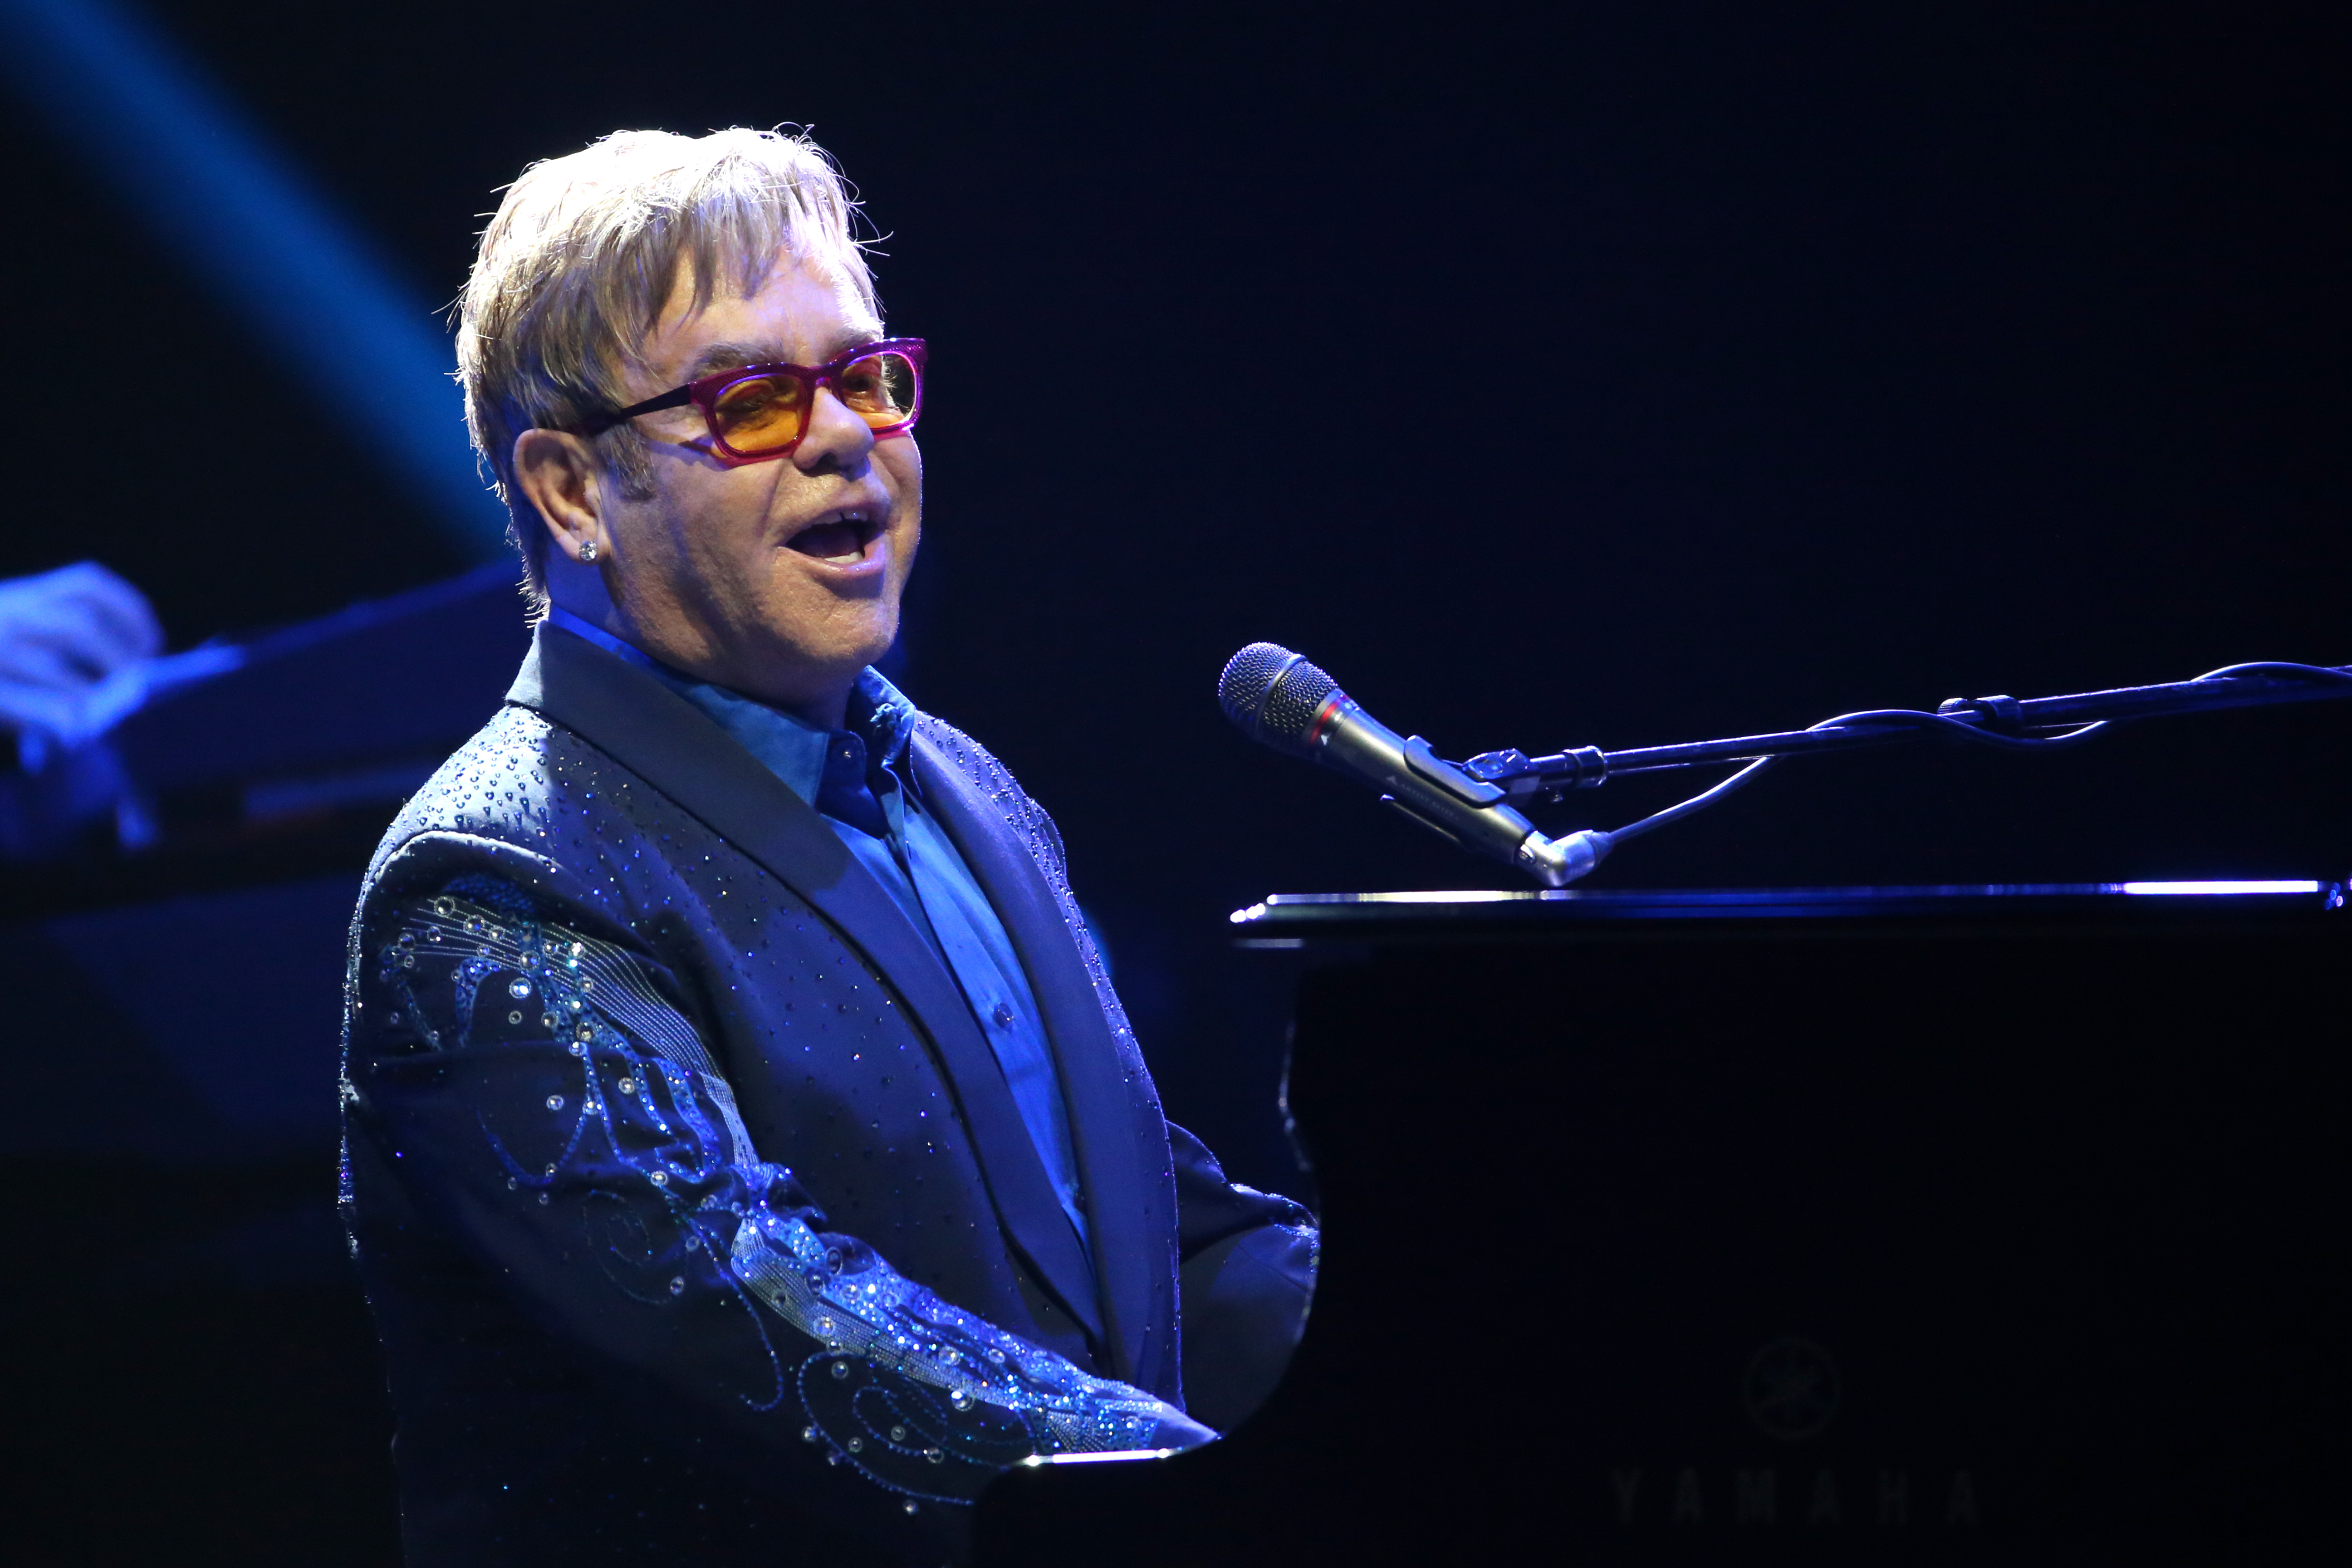 British singer Elton John performs during a concert at the Olympia concert hall in Paris on December 10, 2013.       AFP PHOT